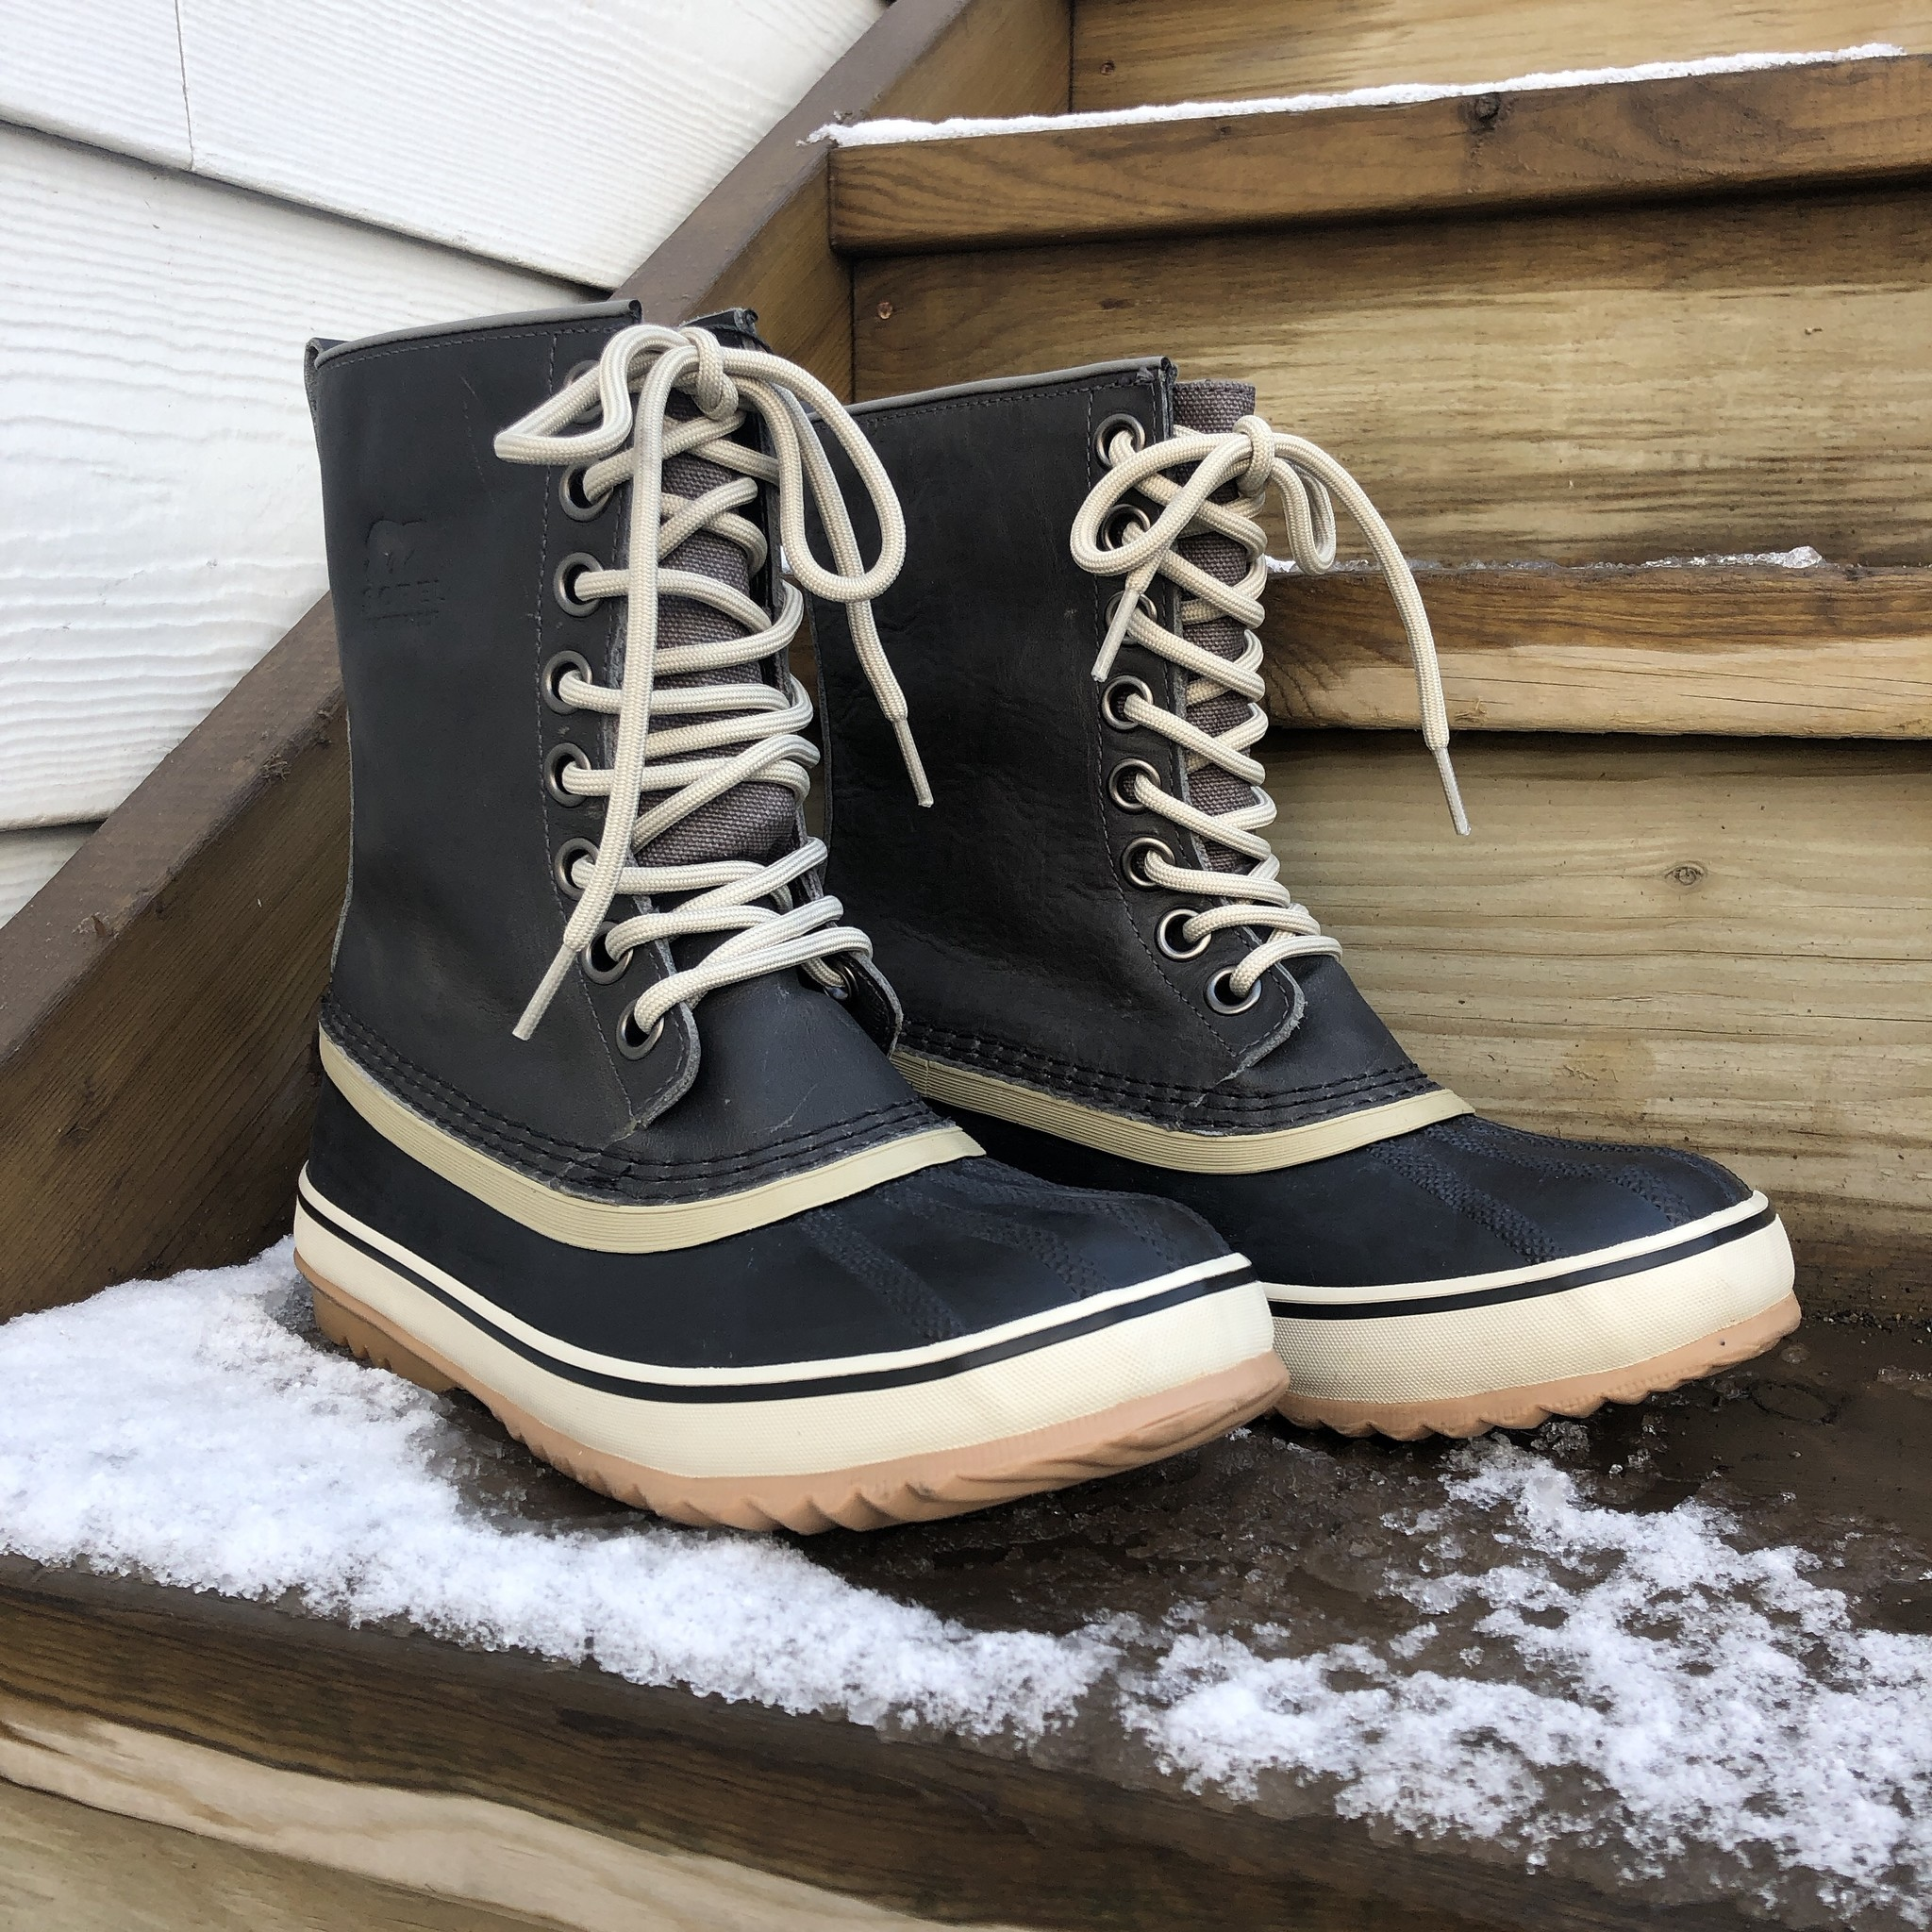 Sorel Footwear Sorel 1964 Premium Leather Quarry